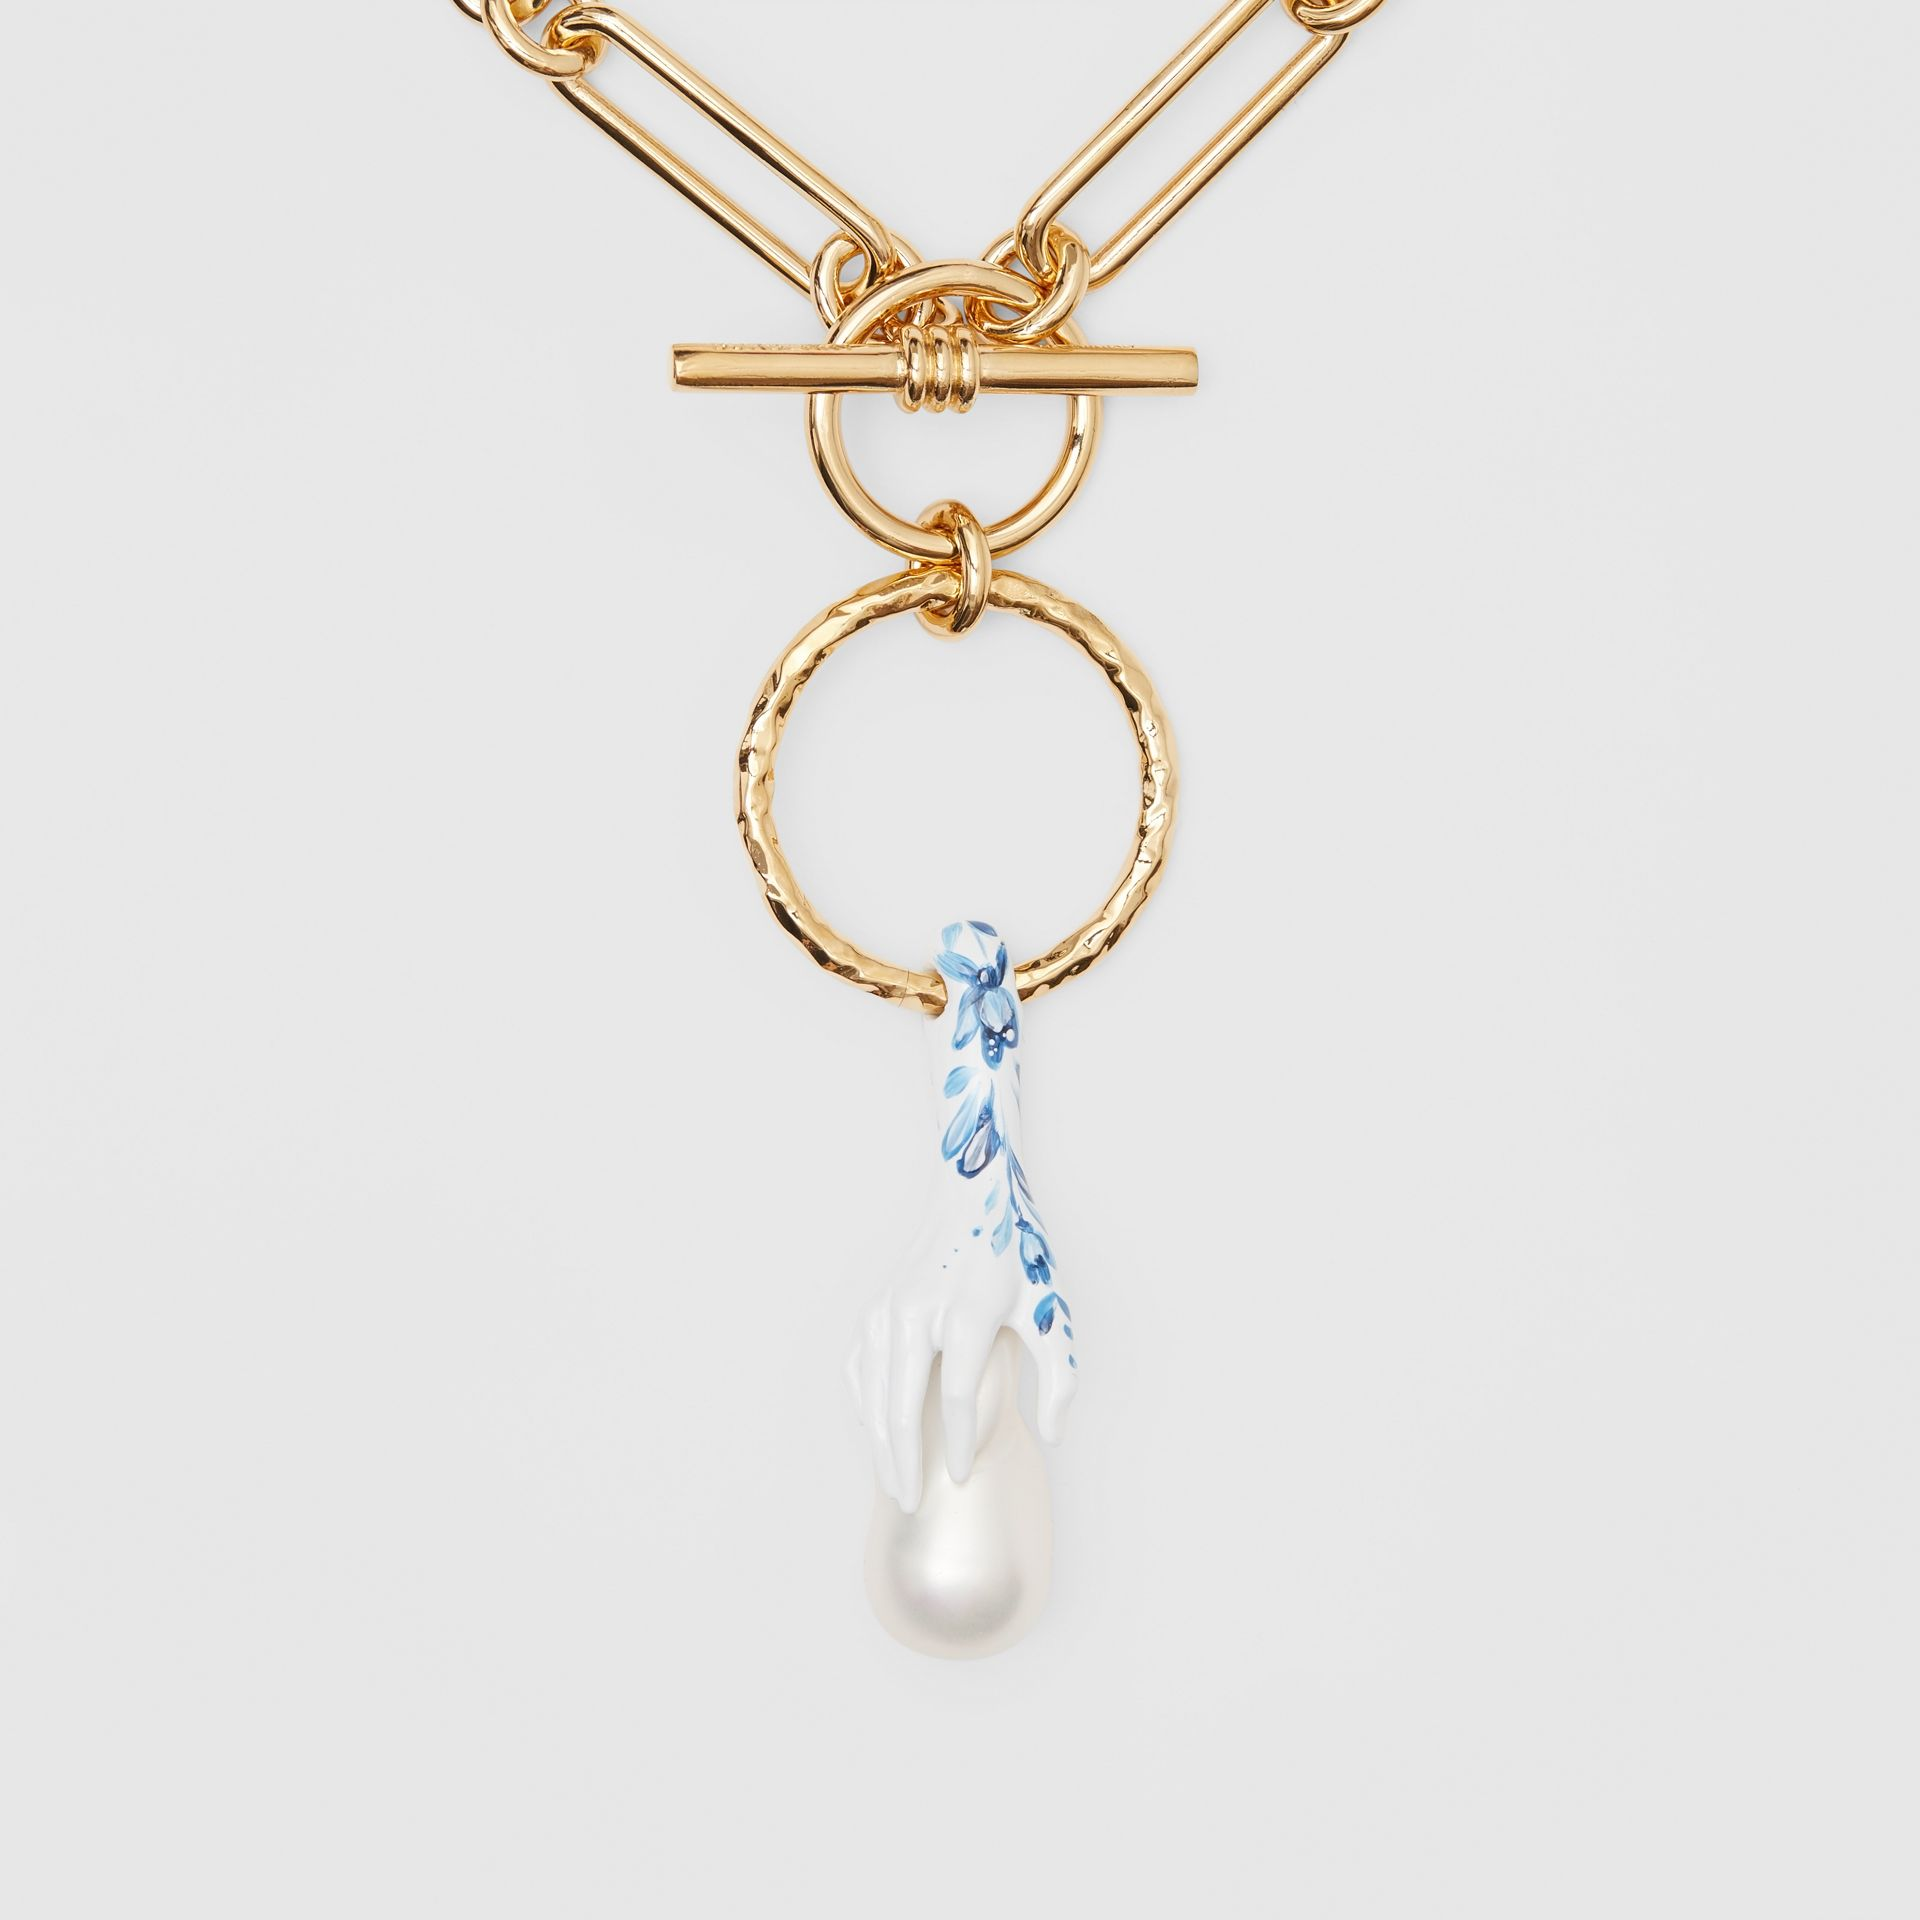 Faux Pearl Detail Gold-plated Chain Necklace in Light Gold/white/blue - Women | Burberry Canada - gallery image 1